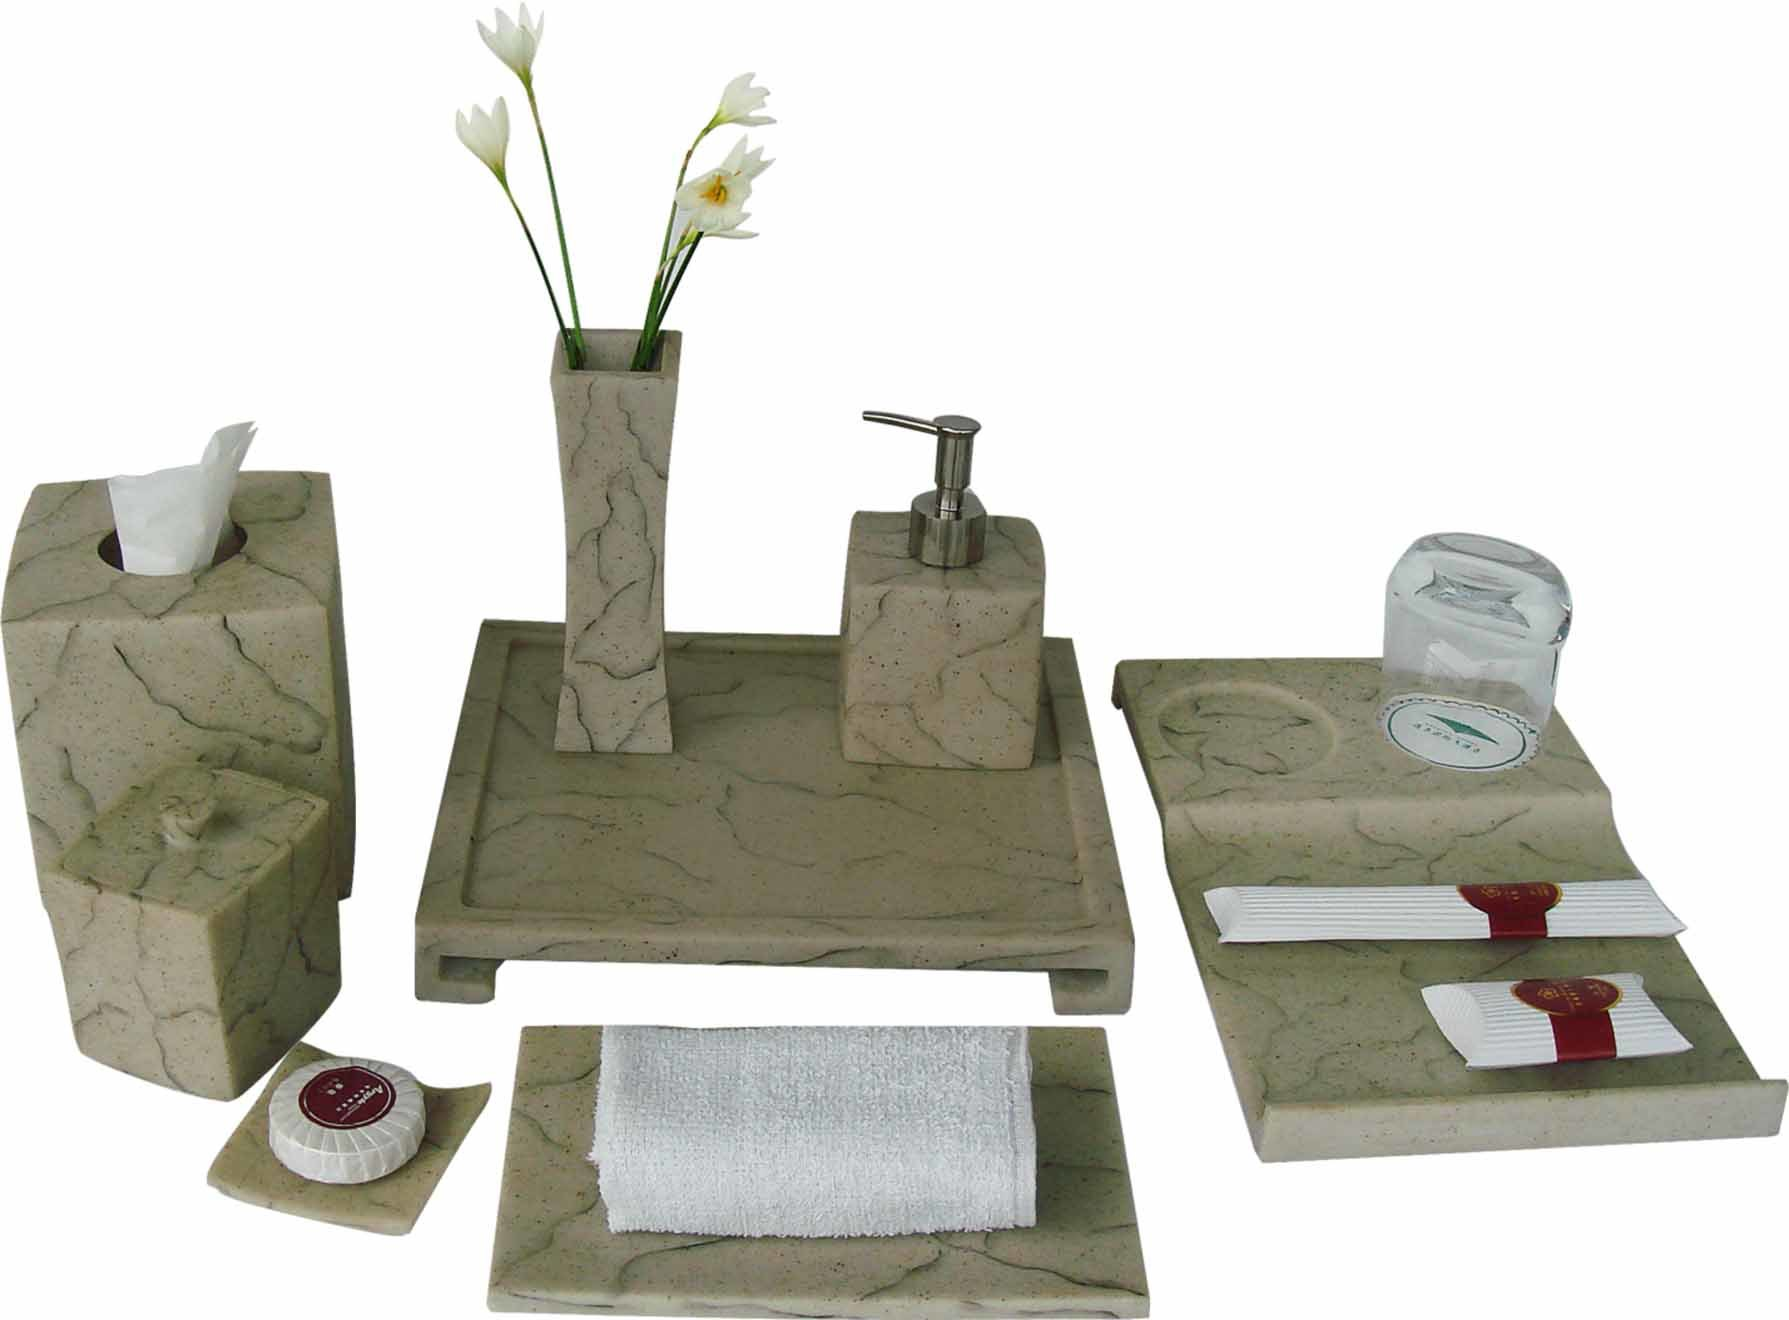 Marble Finish Amenities Holder Set Hotel Balfour Wholesale Bathroom Sets Accessories